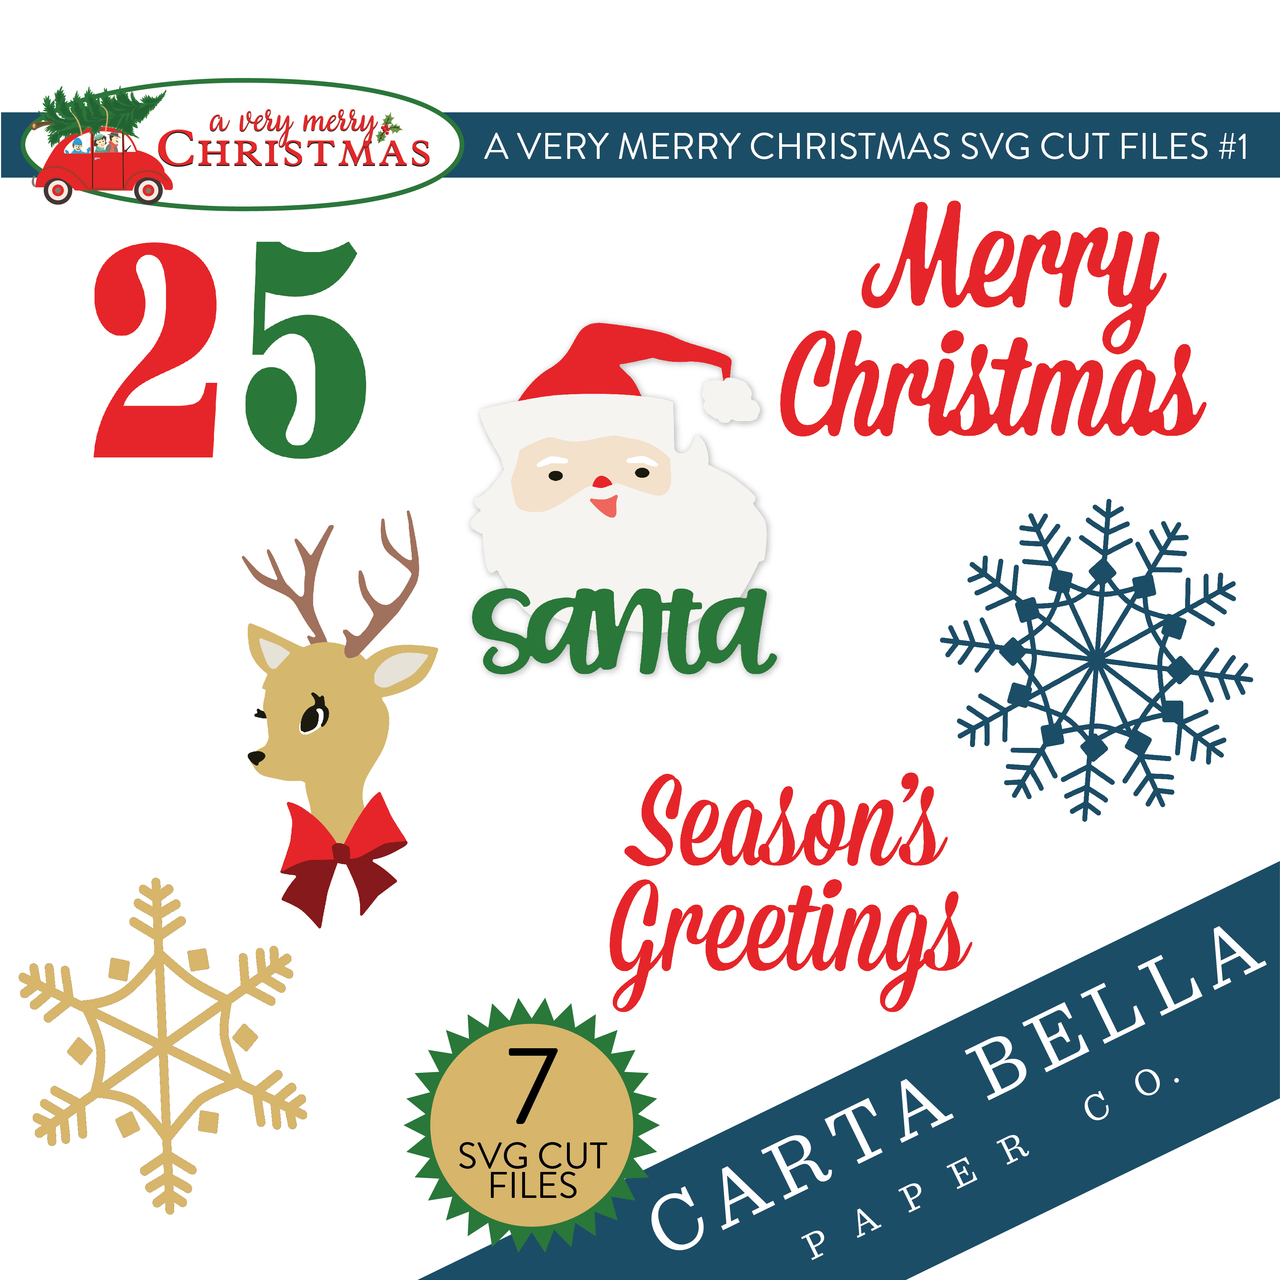 A Very Merry Christmas SVG Cut Files #1